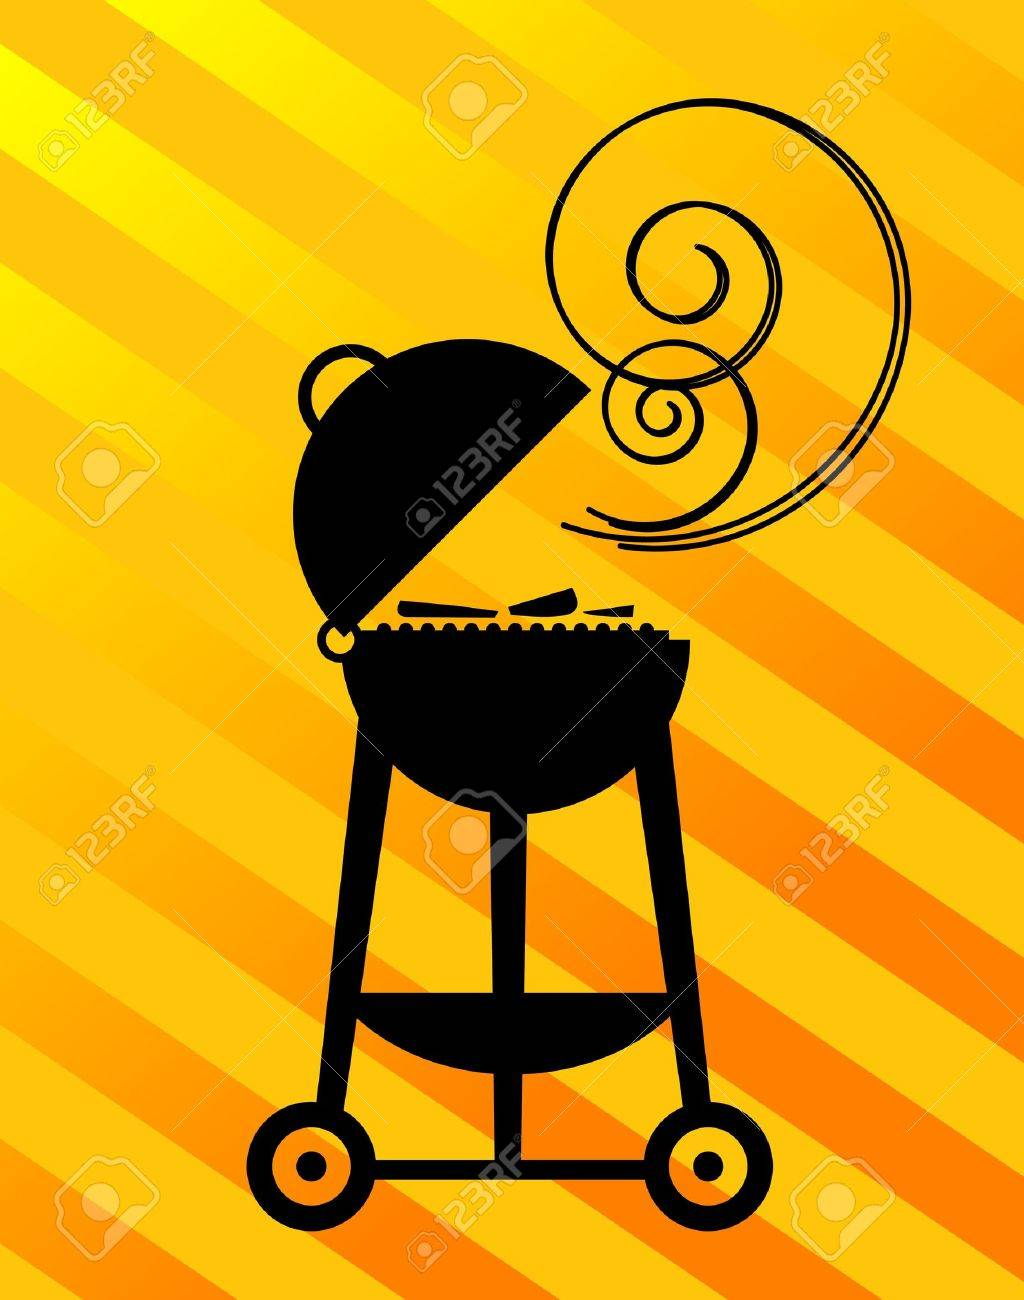 BBQ Silhouette Stock Vector - 14561923